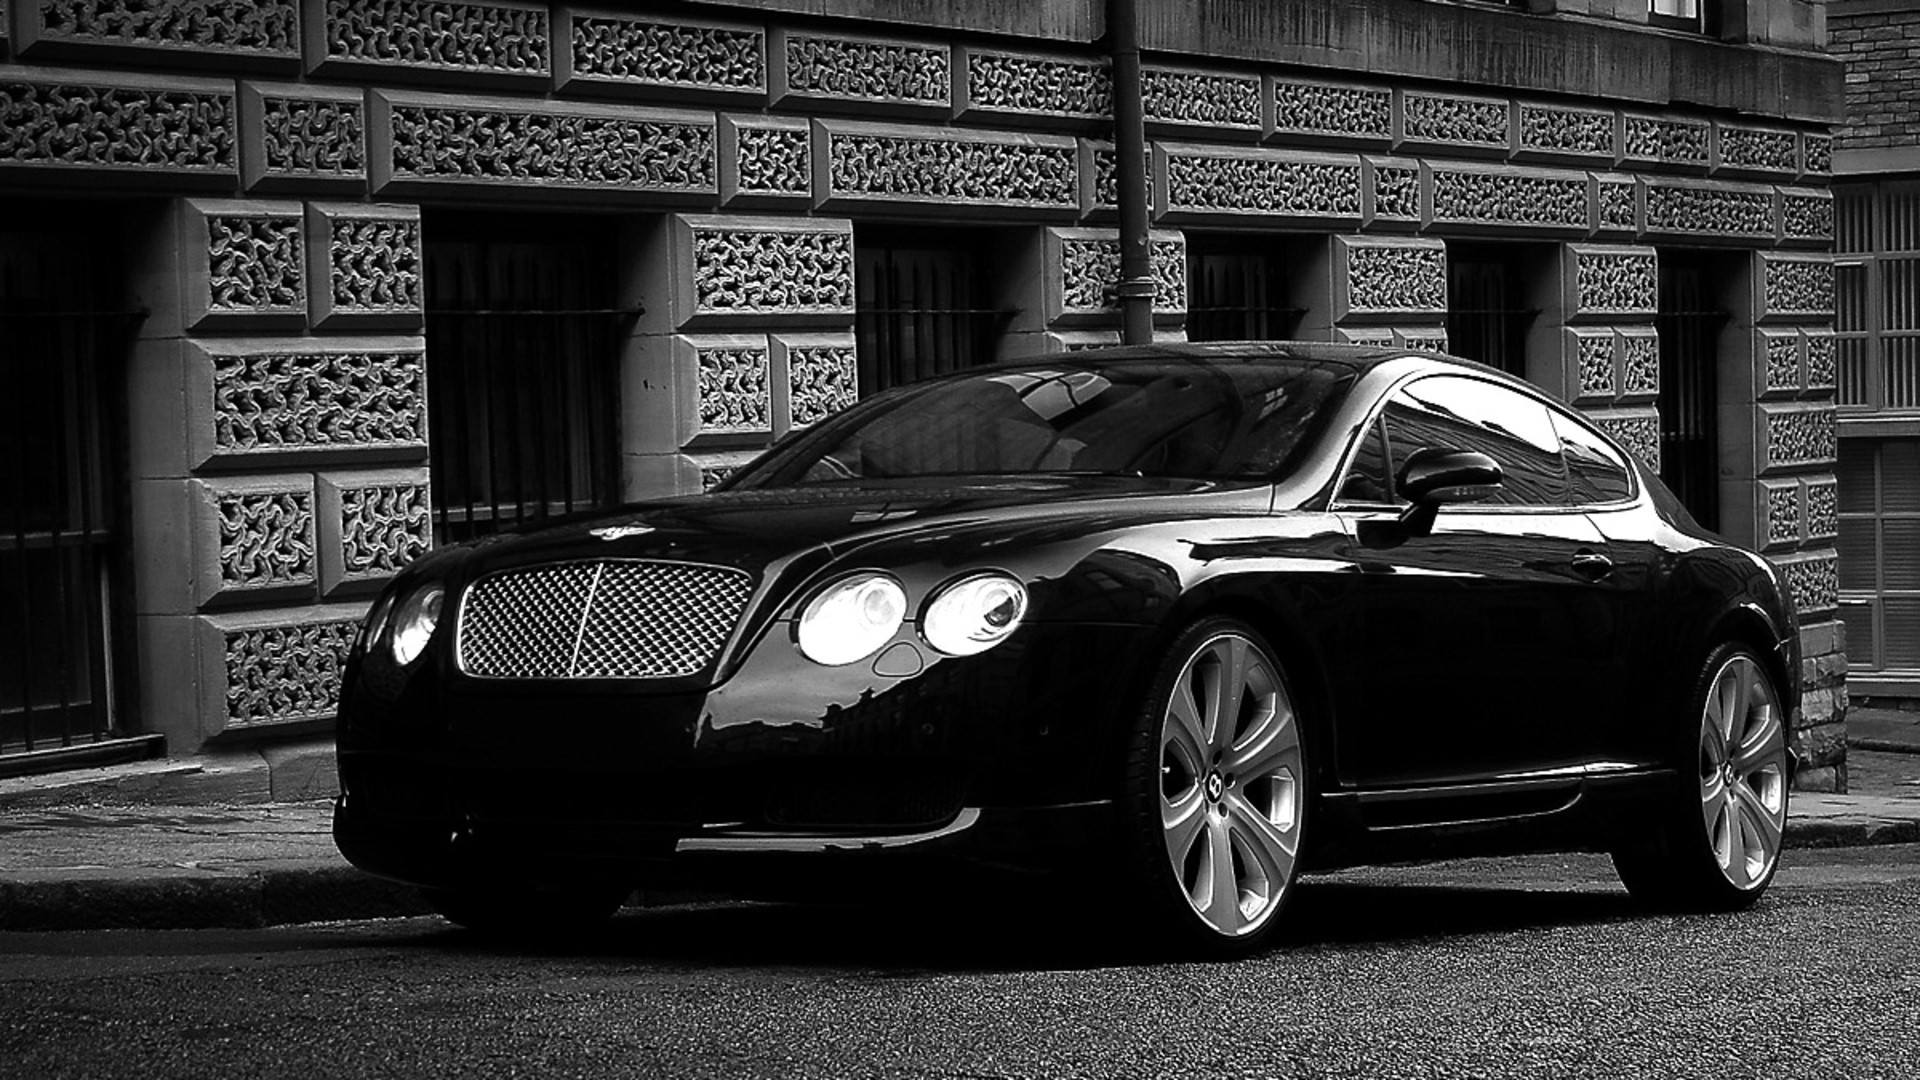 Bentley Wallpaper Desktop